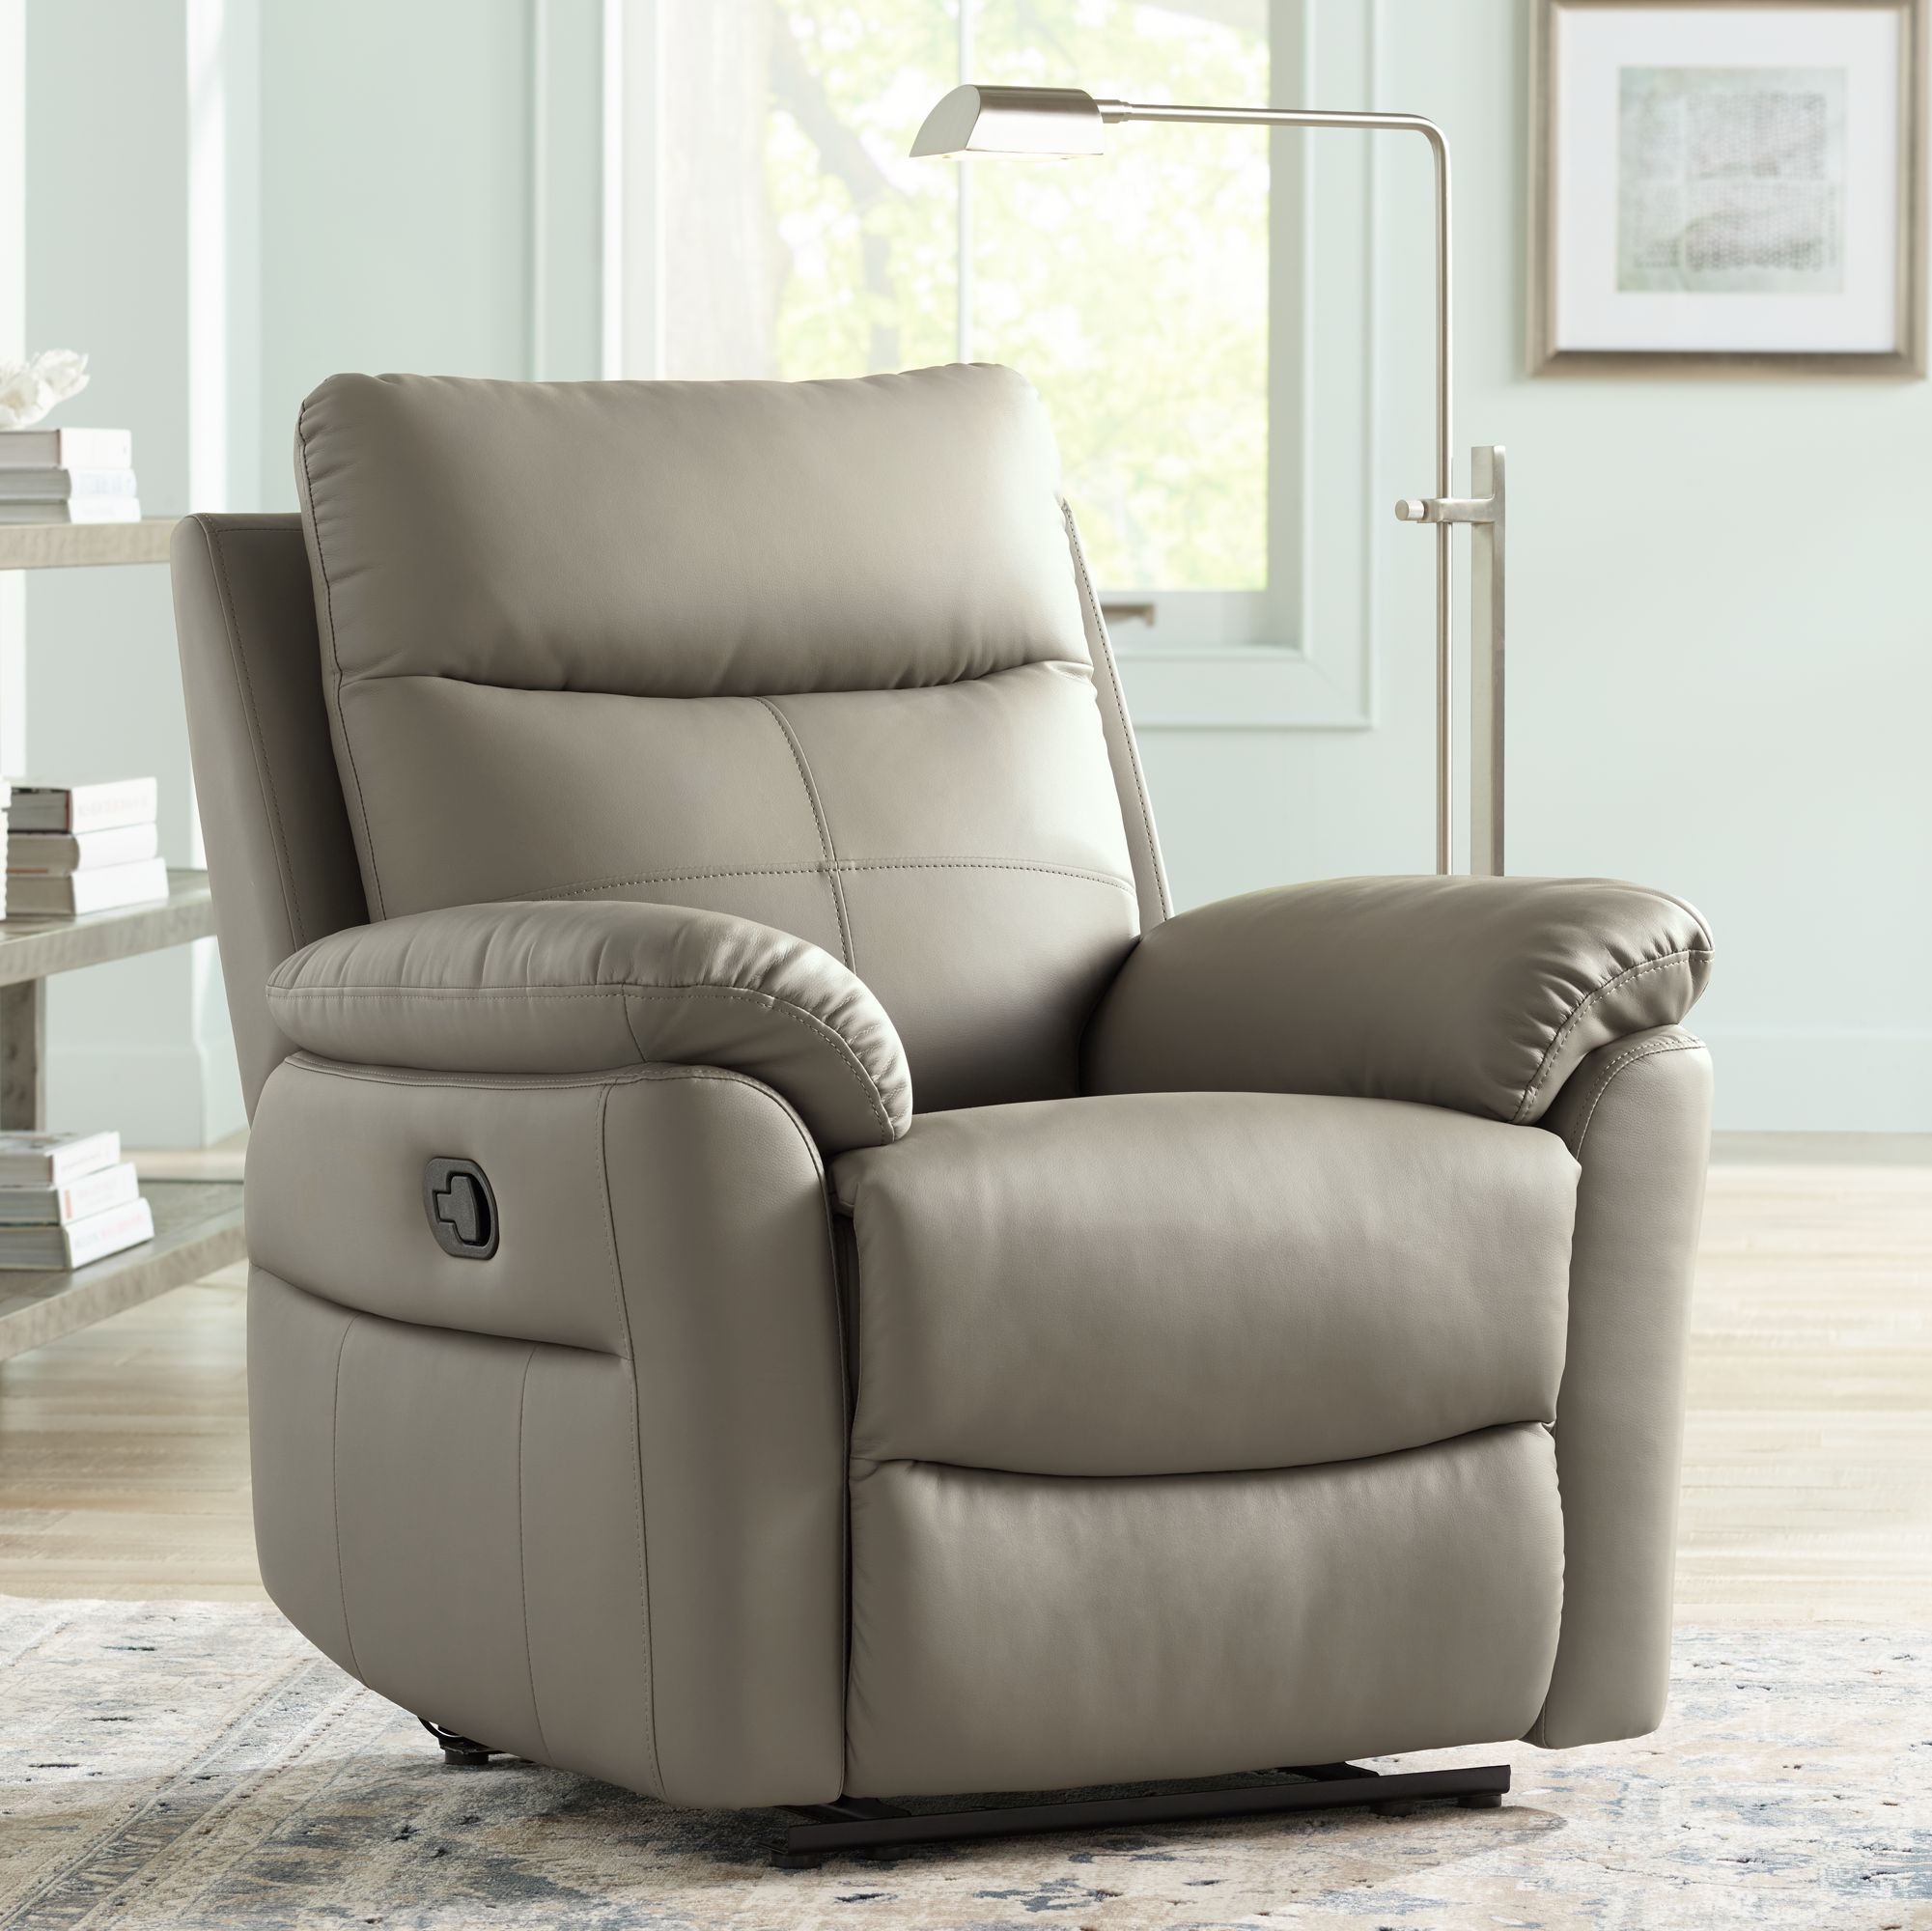 ... Lane Wing Chair Recliner Slipcovers by Lane Recliners Full Size Of Living Room Big And Tall ... & 100+ [ Lane Wing Chair Recliner Slipcovers ] | Wingback Chair ... islam-shia.org